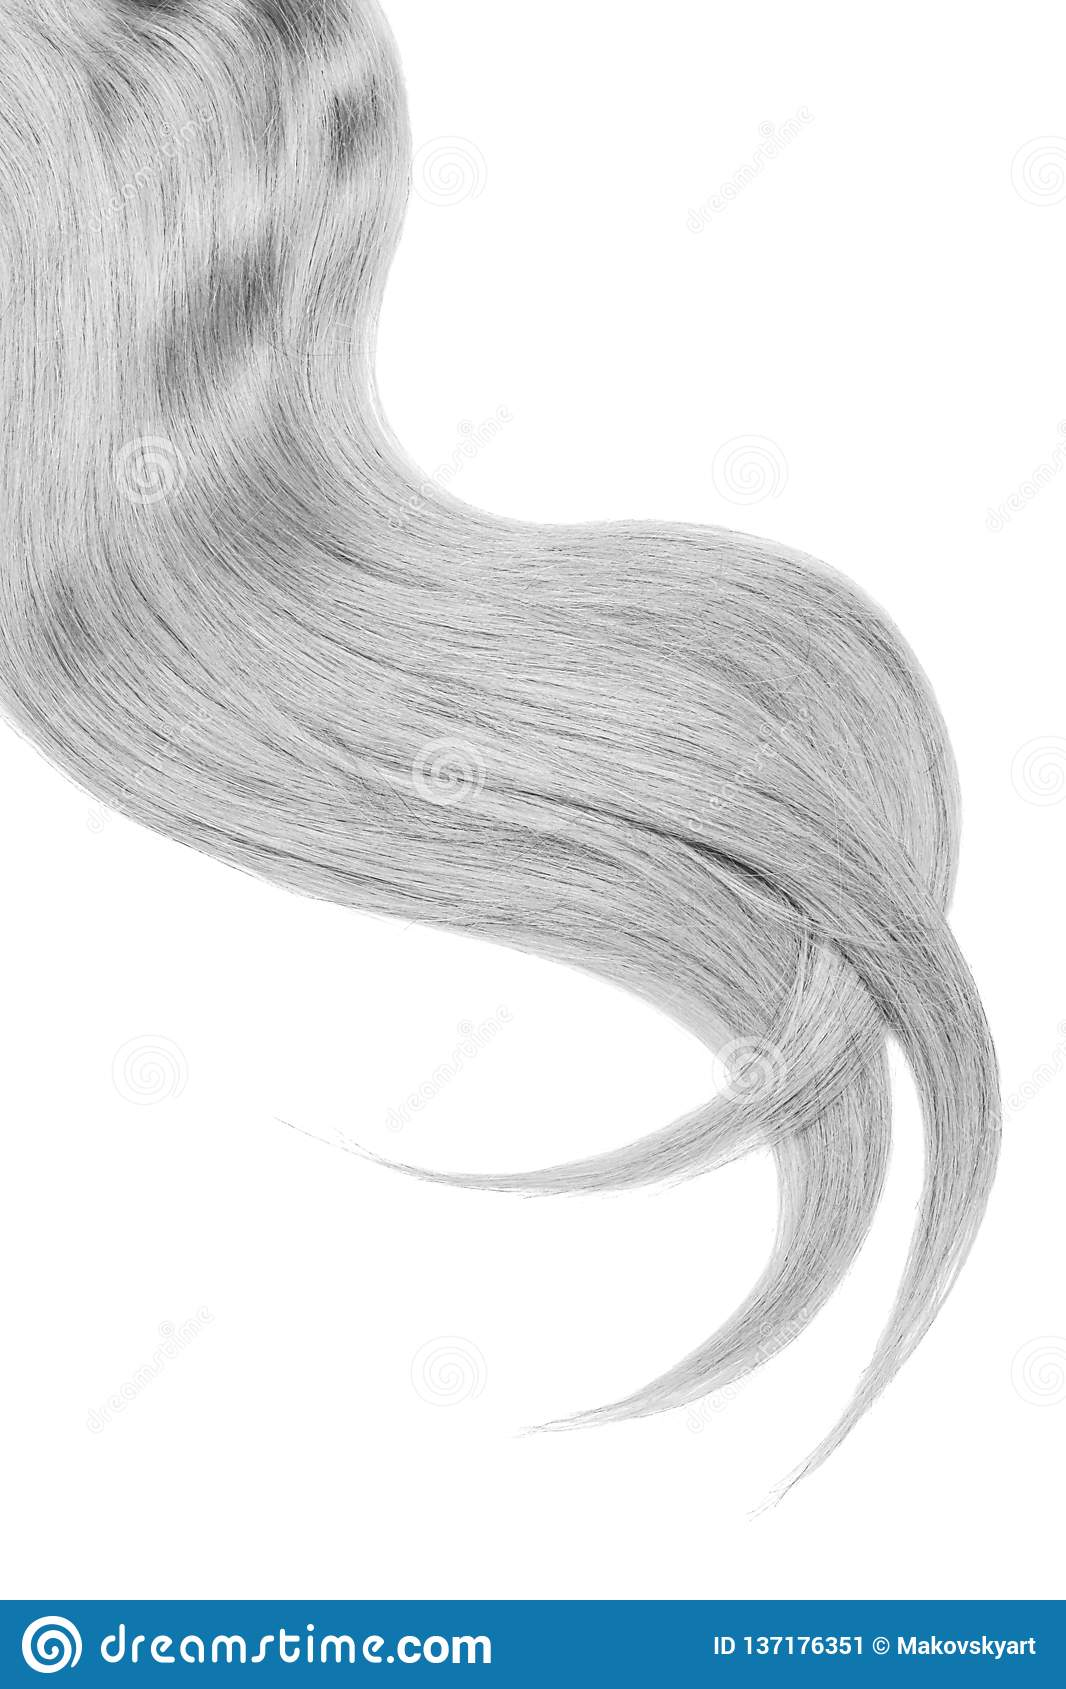 Curl of natural gray hair on white background. Wavy ponytail